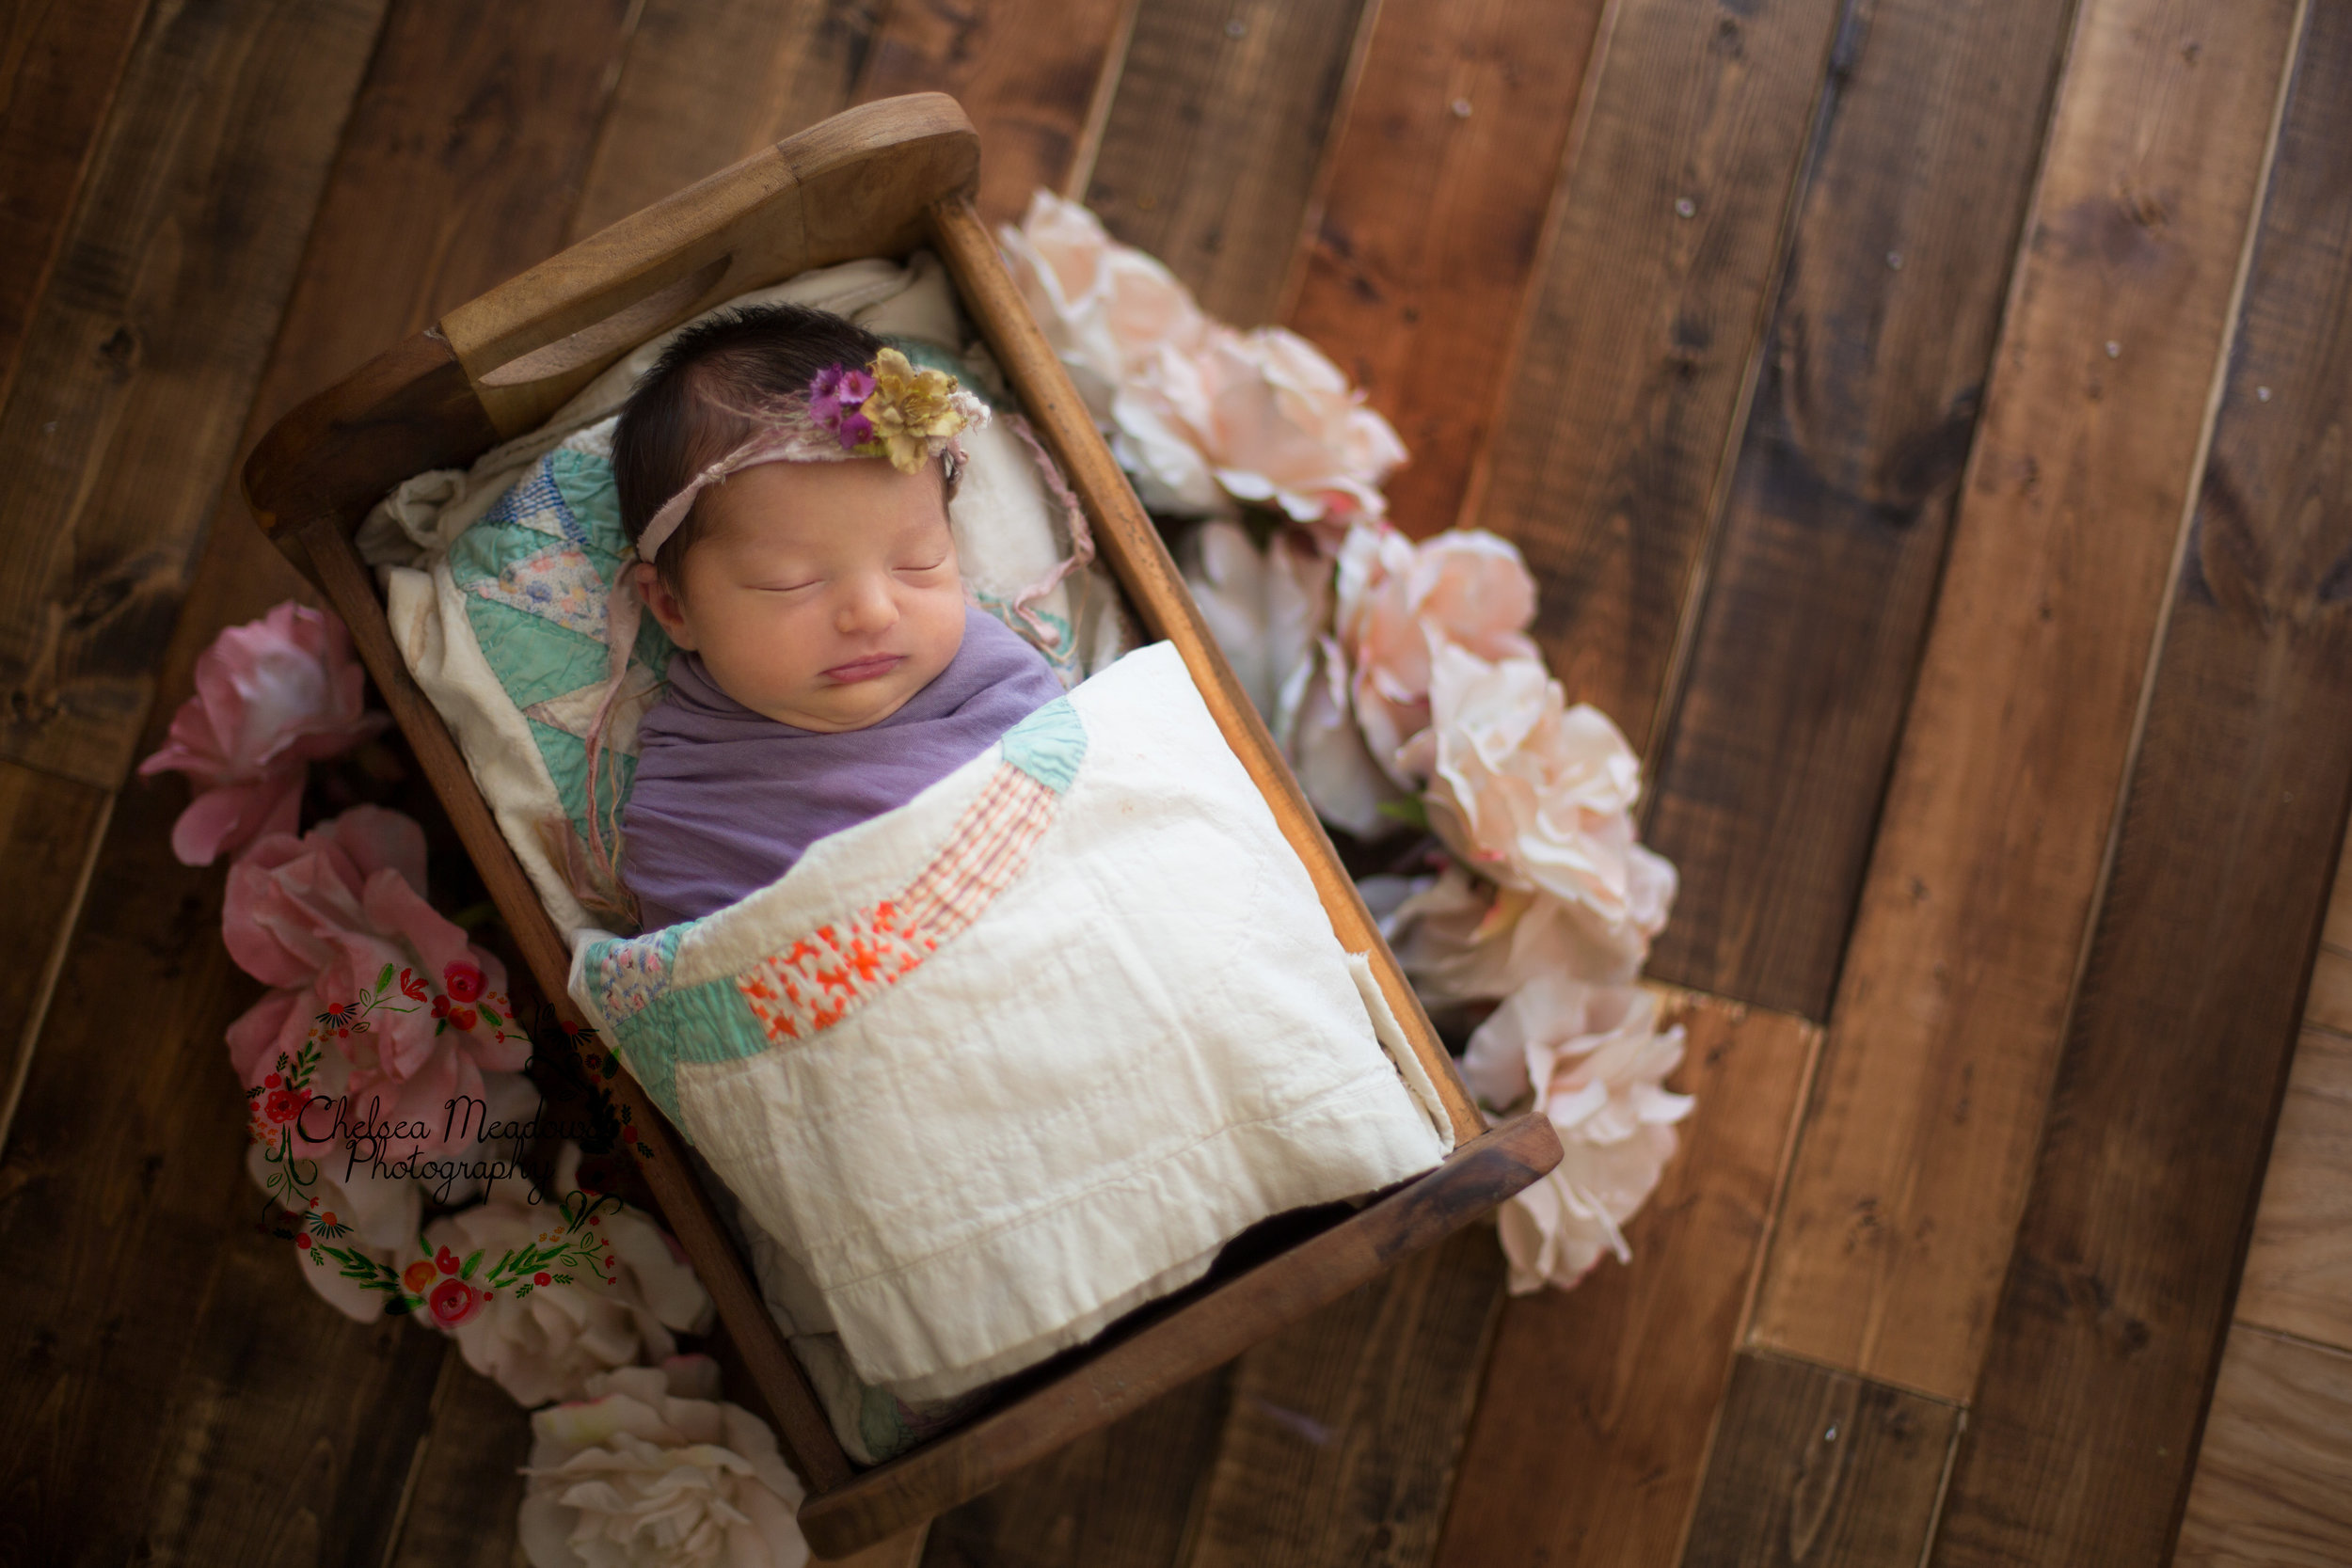 Baby S Newborn Session - SM - Chelsea Meadows Photography 11.jpg